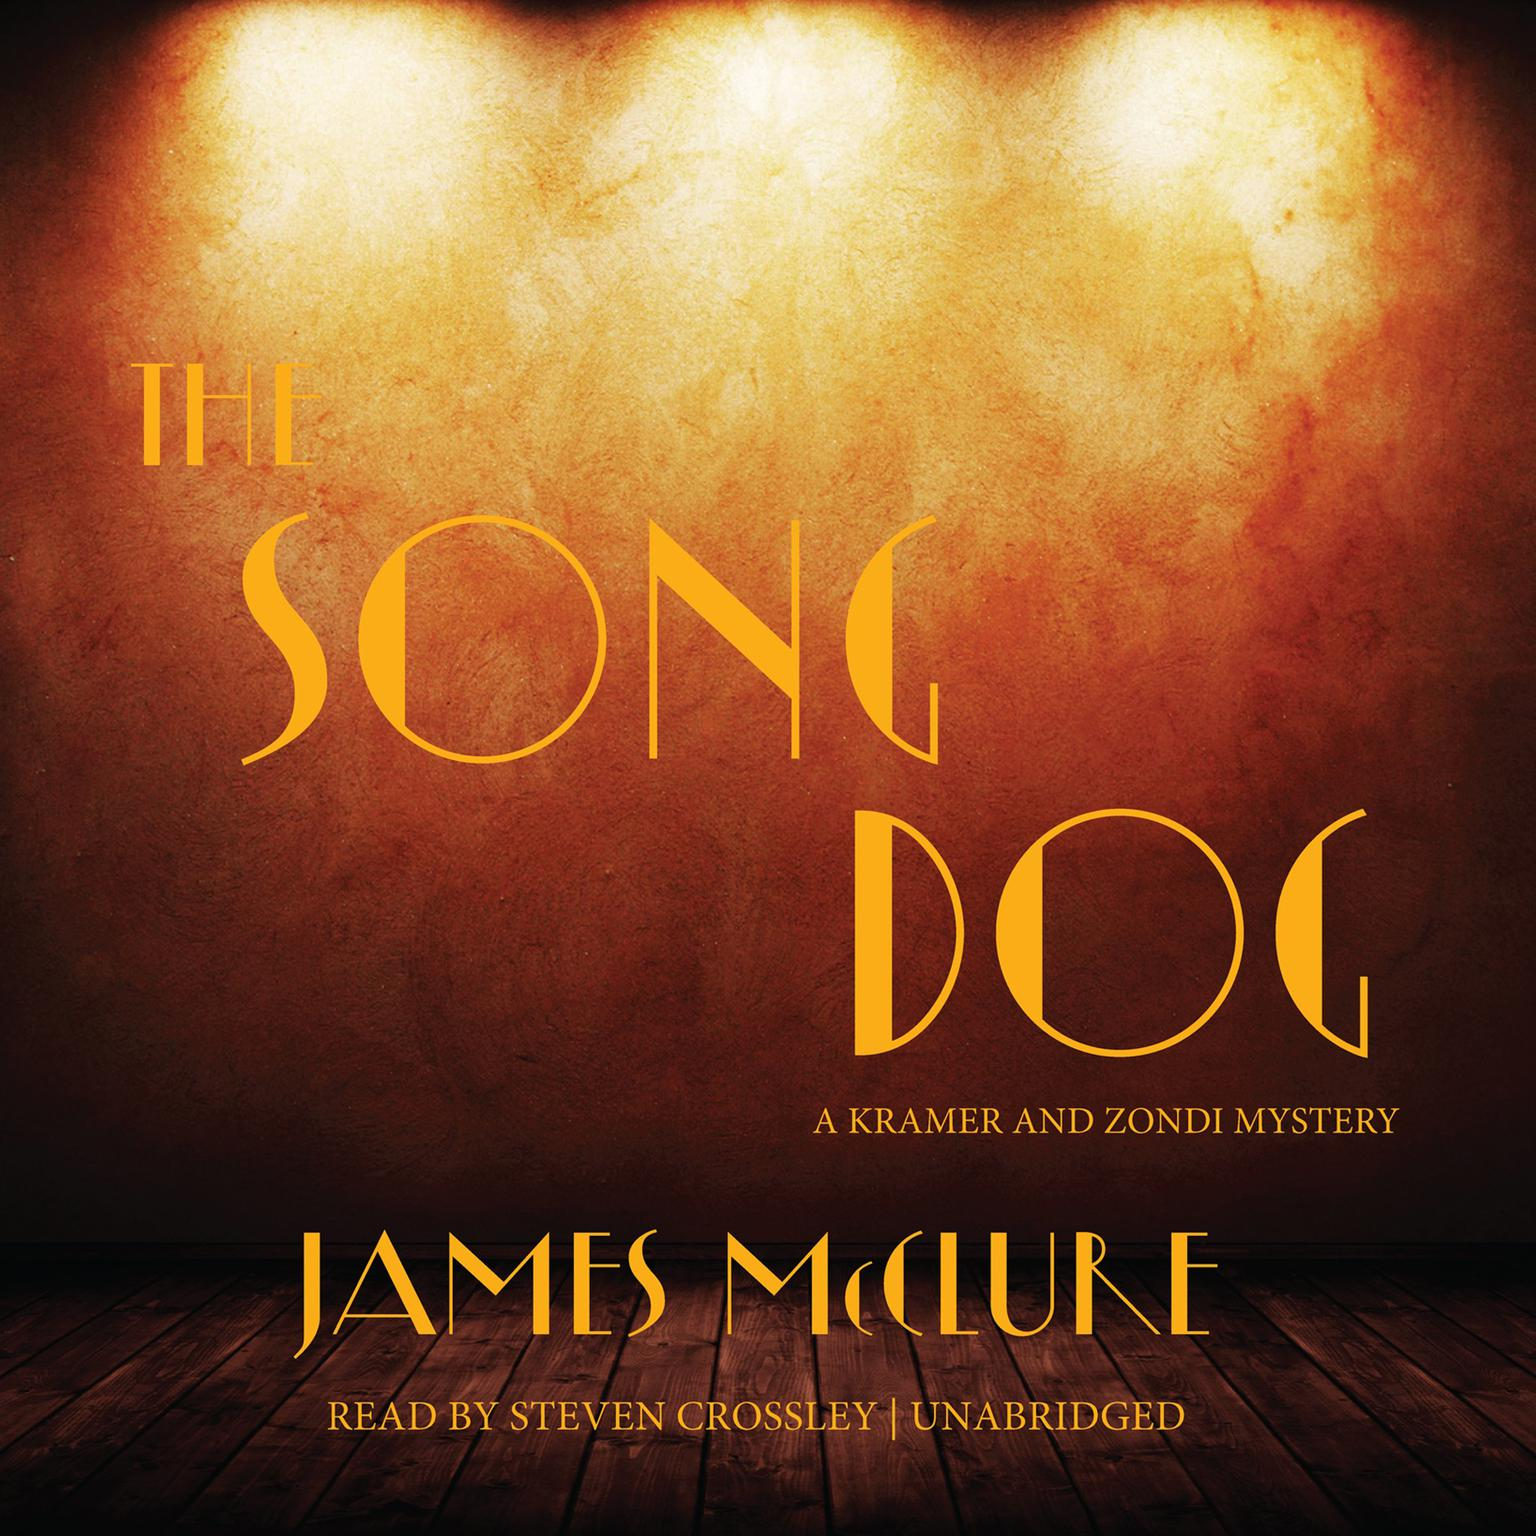 Printable The Song Dog: A Kramer and Zondi Mystery Audiobook Cover Art